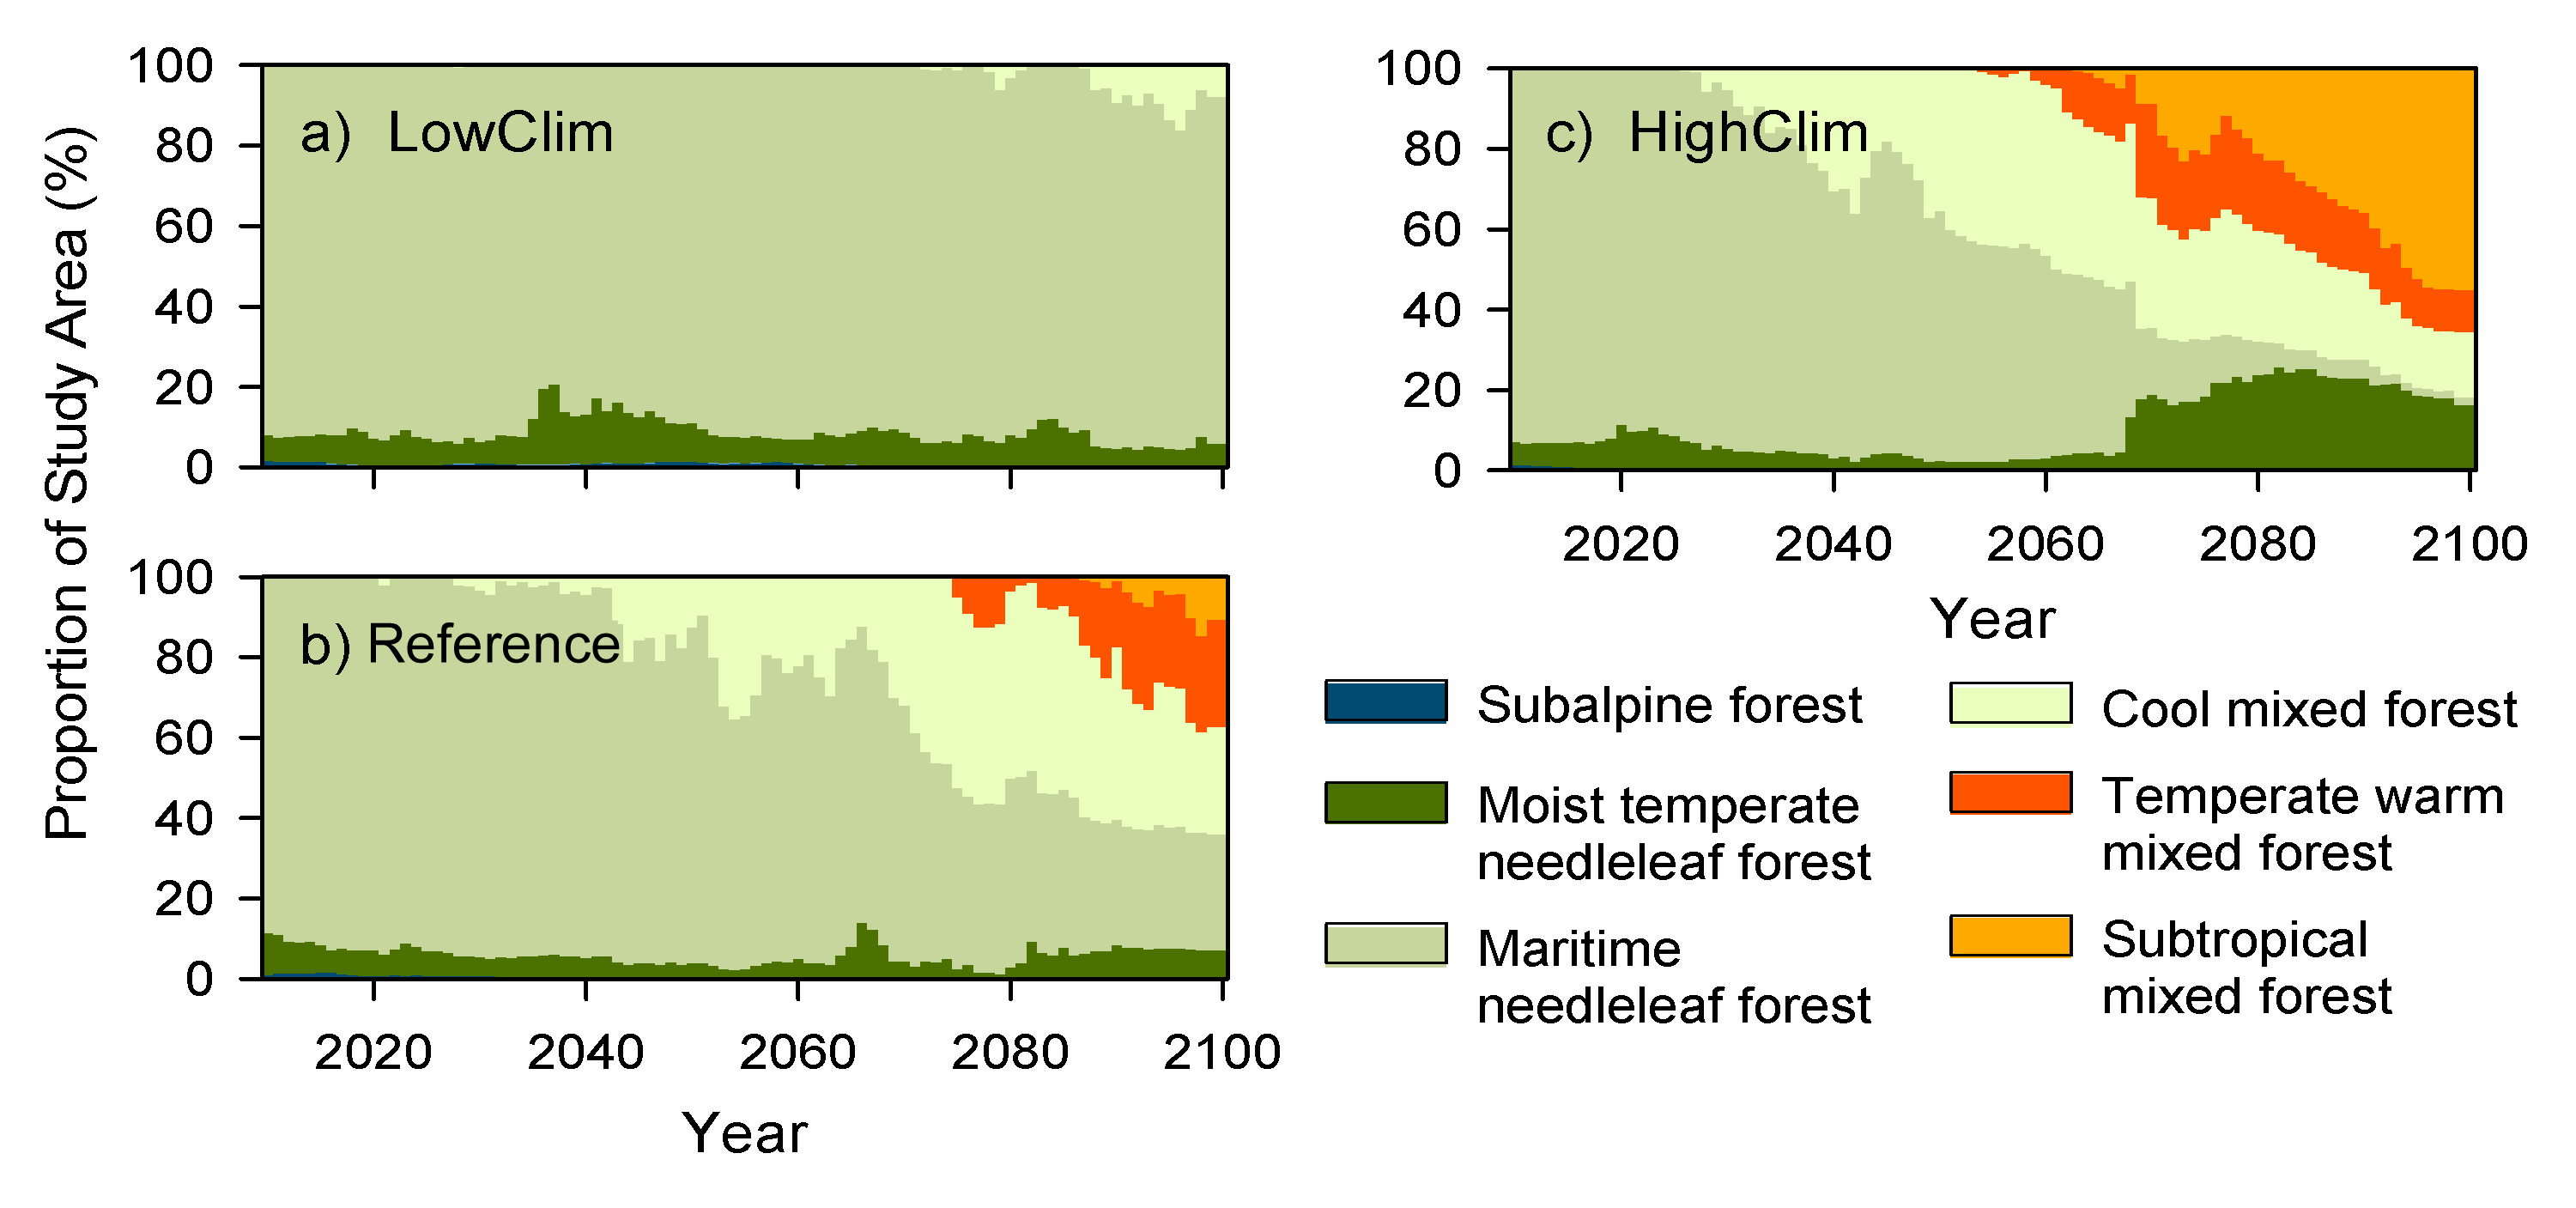 Figure 4.  Time series for potential vegetation cover type proportions of the Willamette River Basin uplands: a) LowClim, b) Reference, c) HighClim.